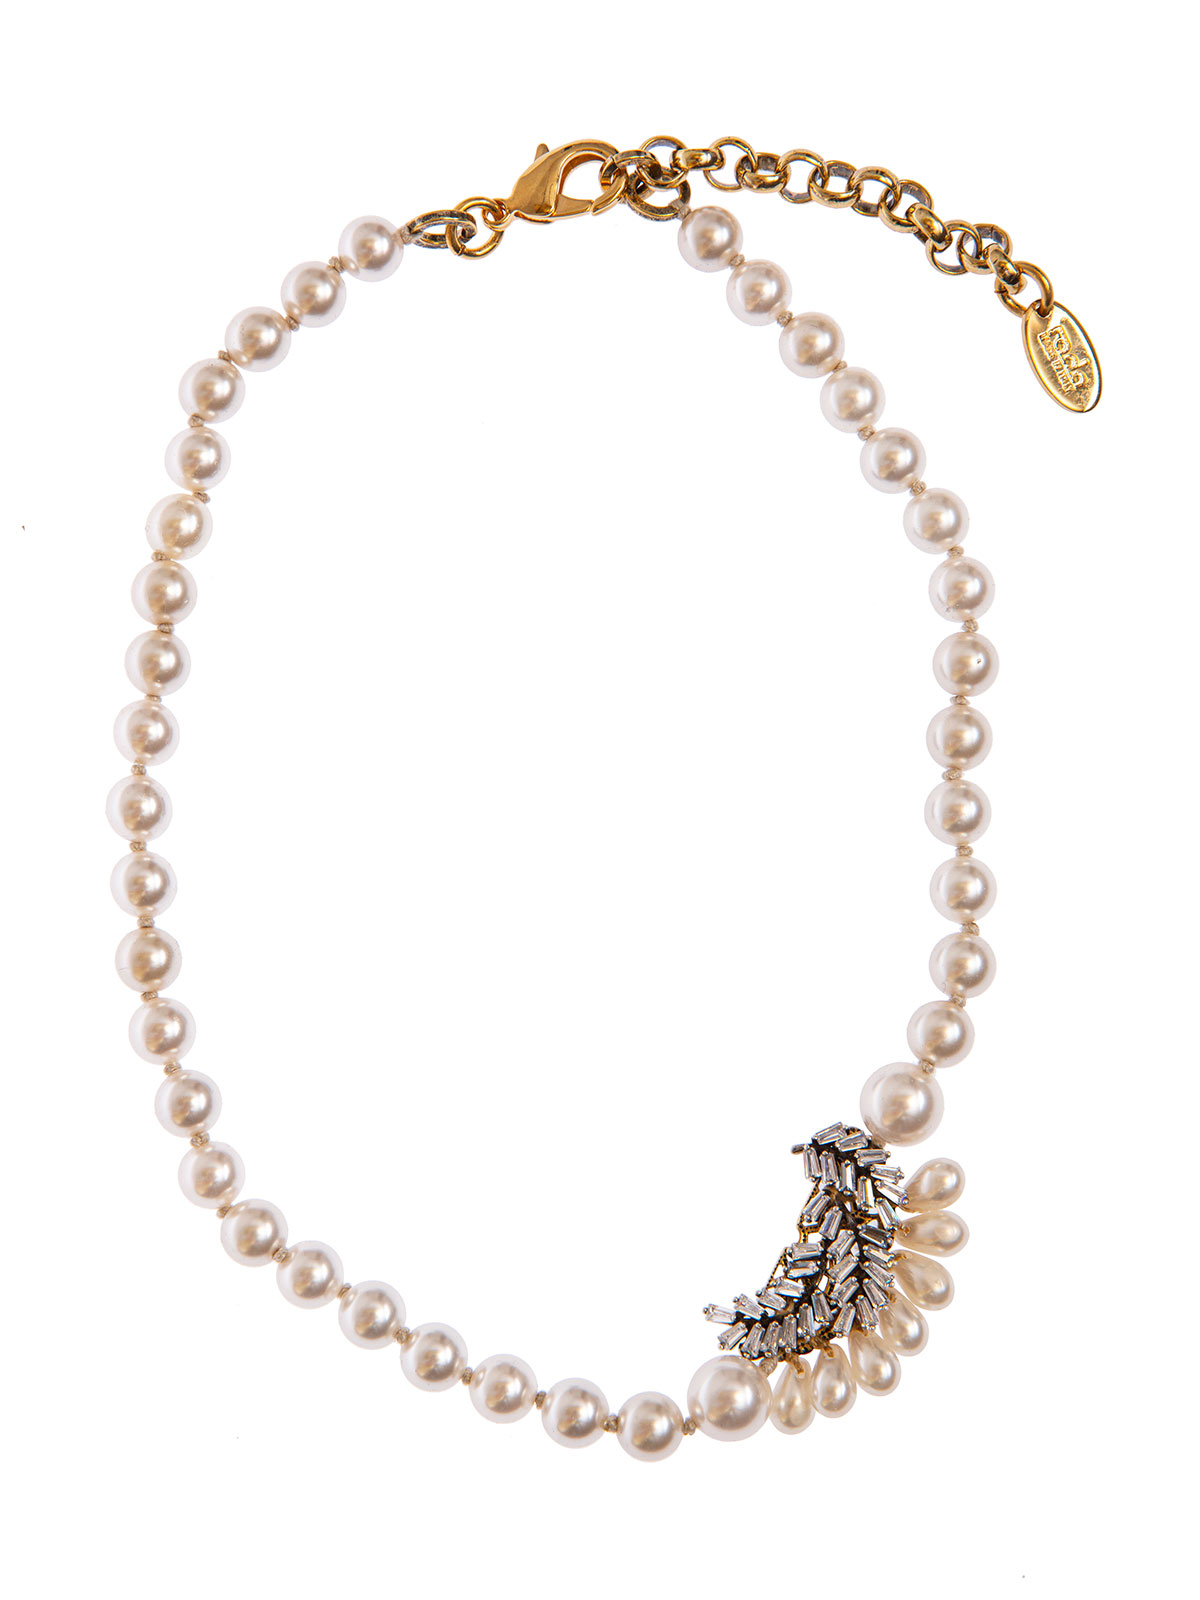 Pearl necklace with crystal leaves and drops